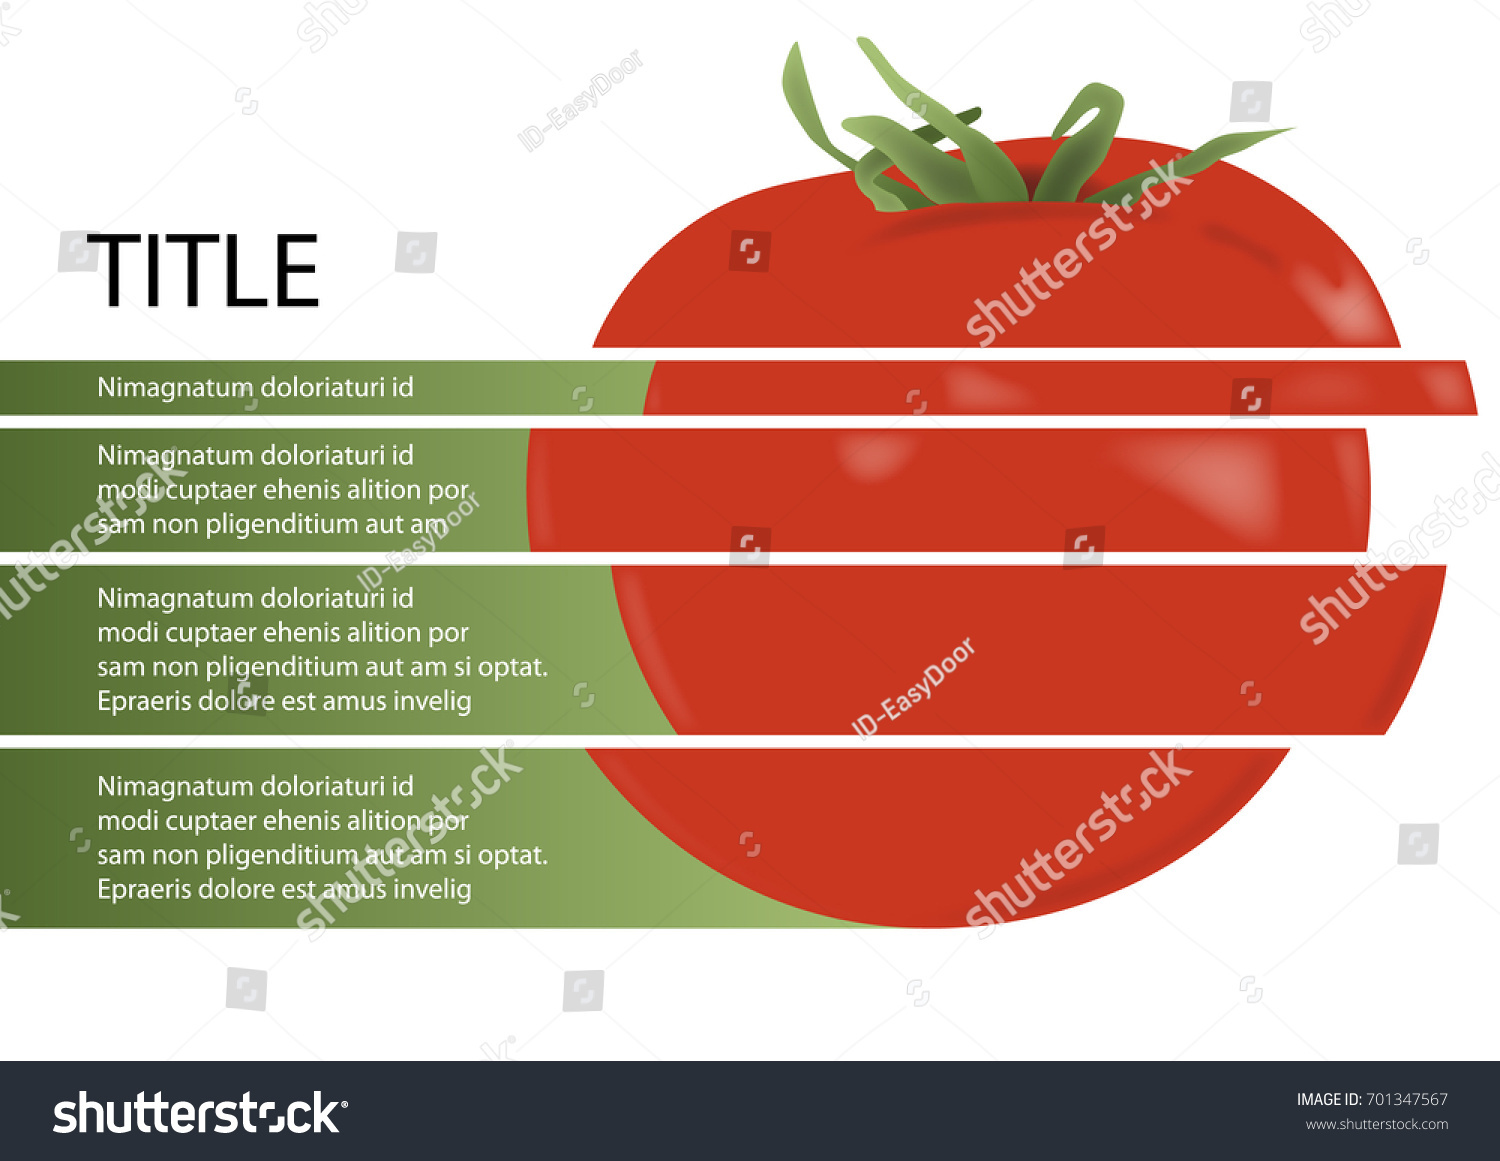 Layout Tomato Cut Illustrate Editorial This Stock Vector Royalty Prune Tomatoes Diagram Of Plant A To An Allows Incorporate